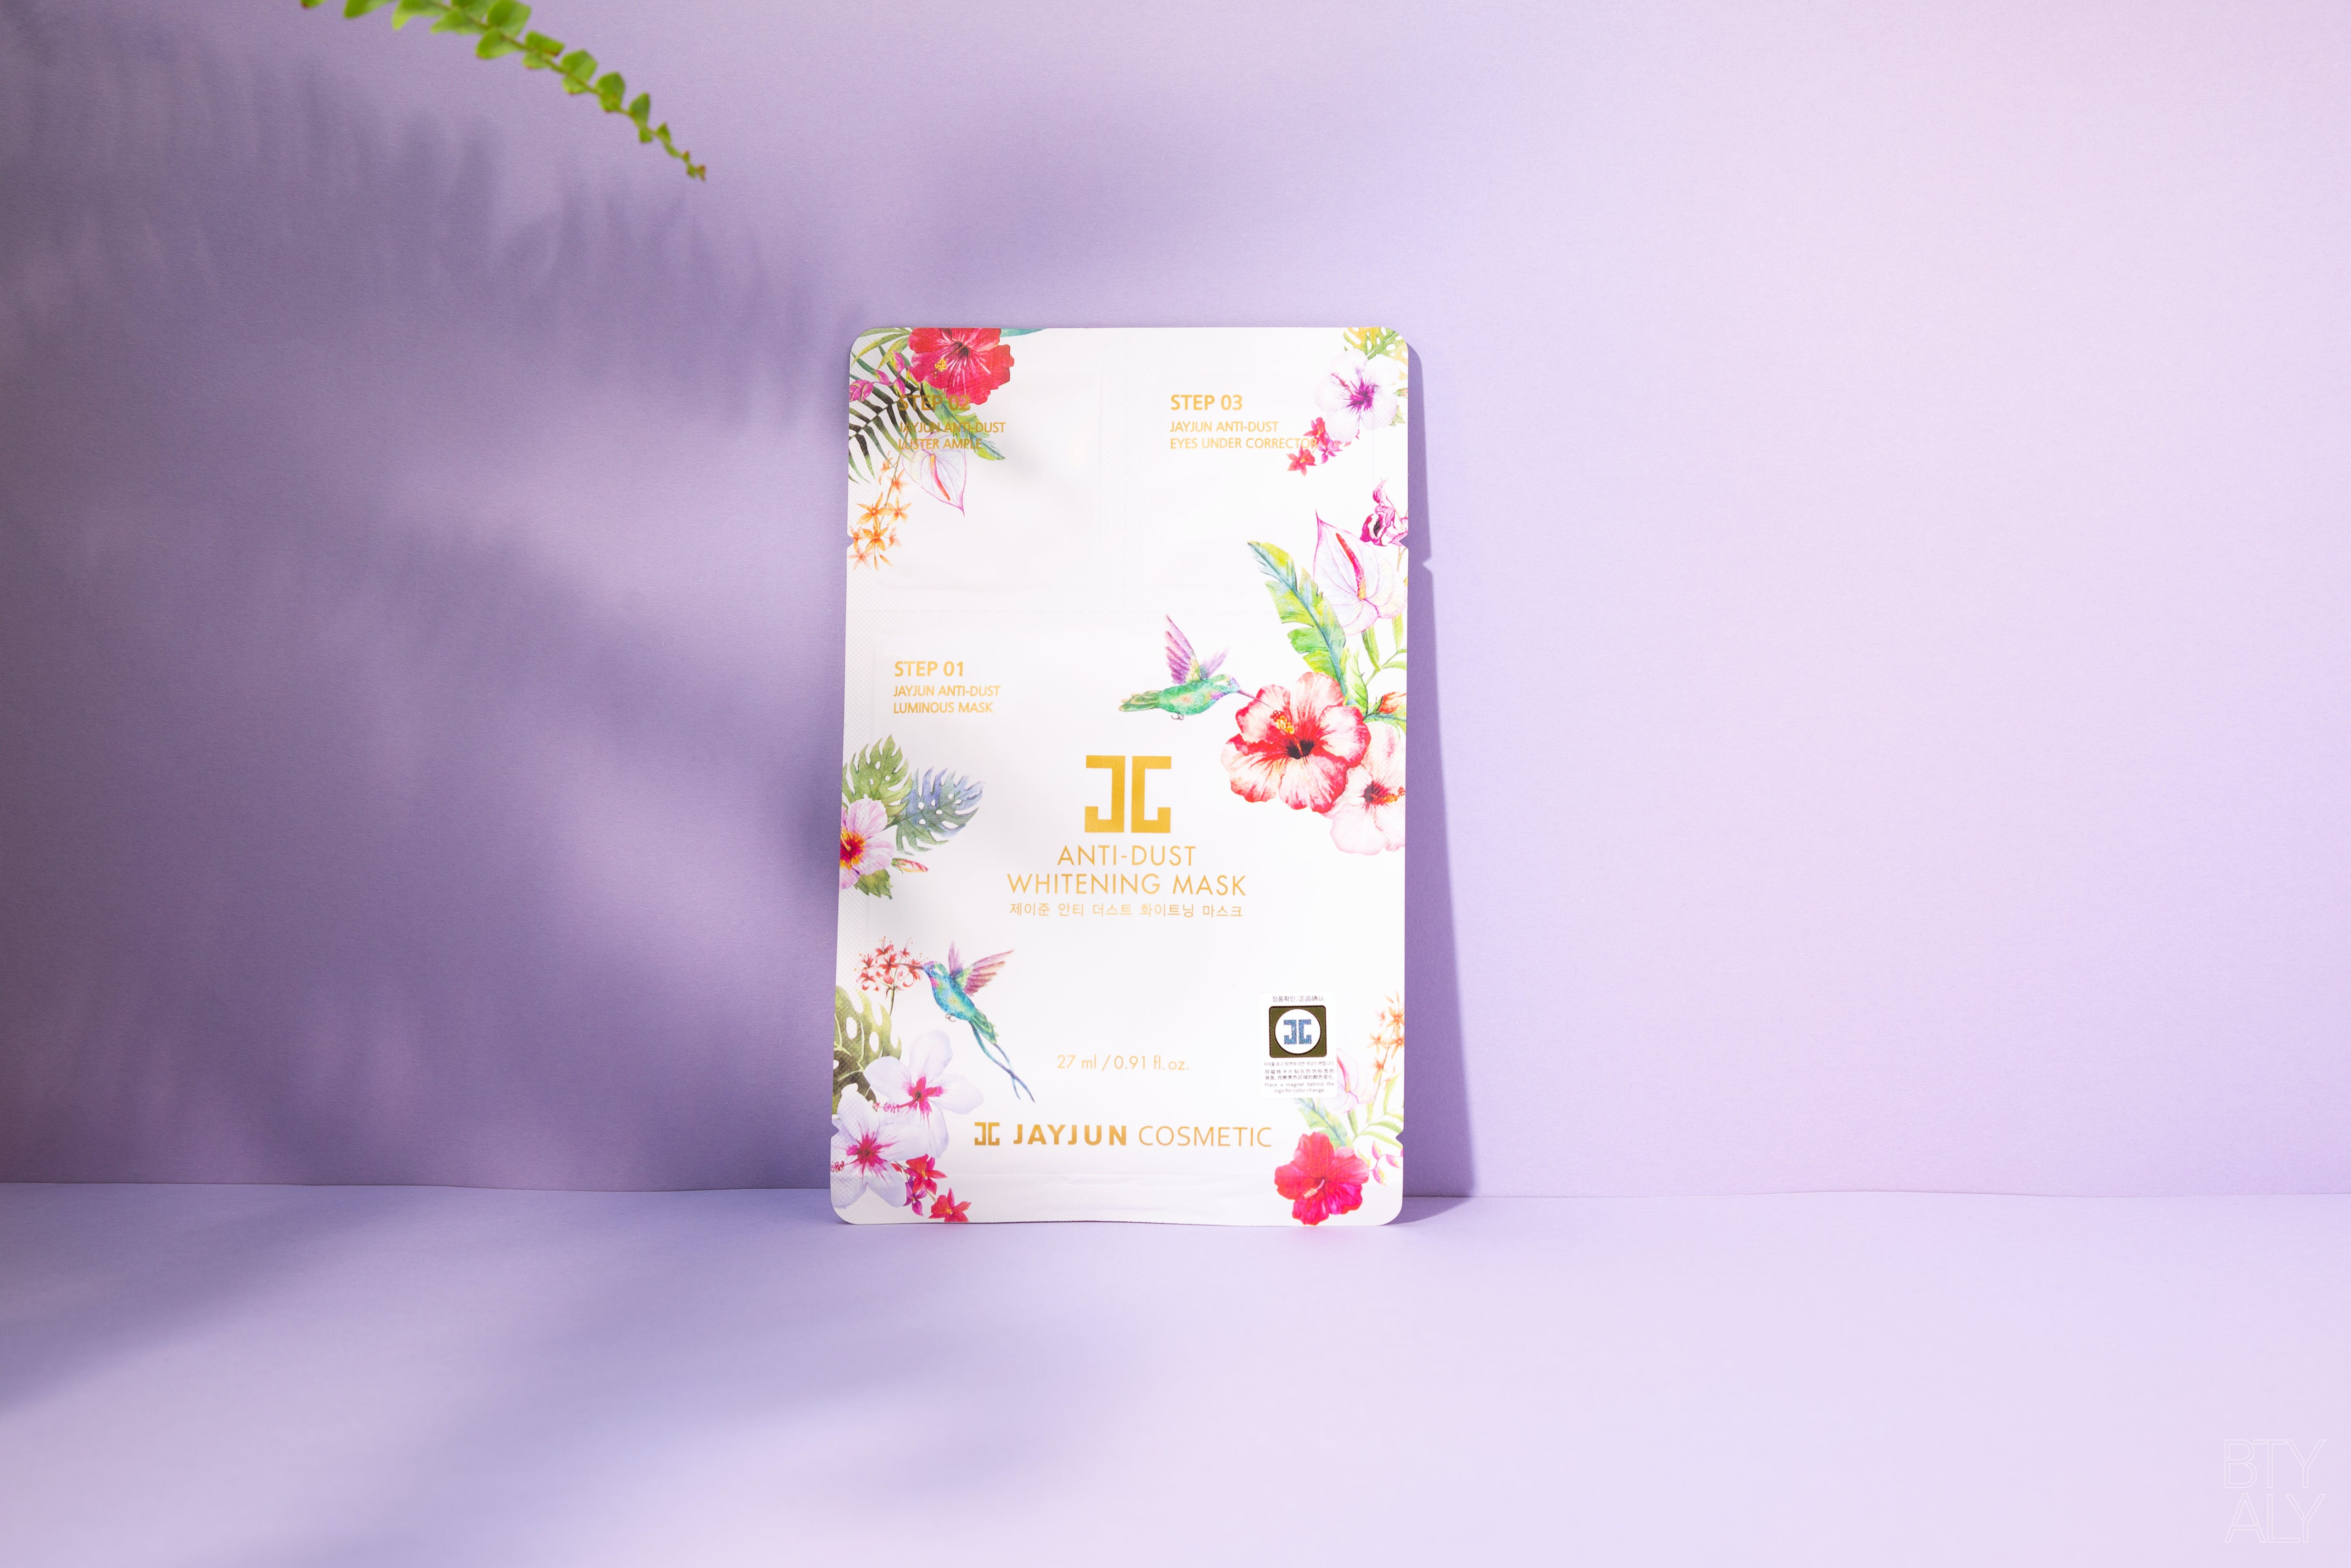 Jay Jun Cosmetics Anti Dust Whitening Mask